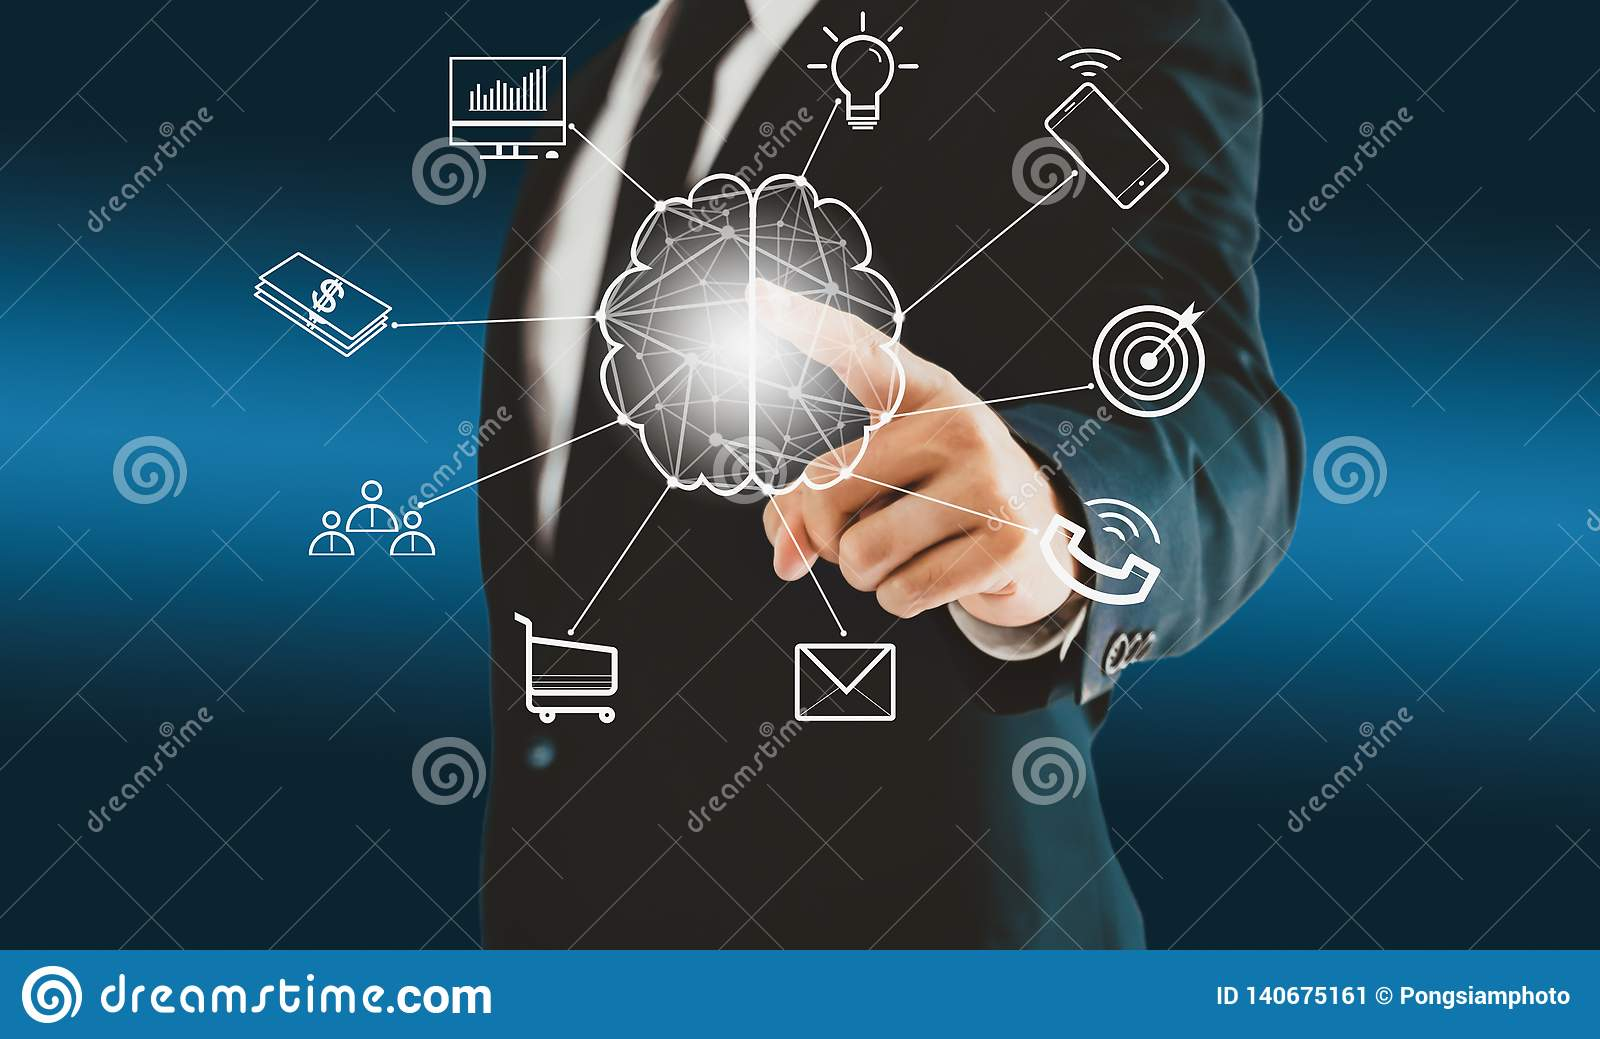 Businessman touching brain virtual button about brainstorming a concept such as teamwork, ideas, plan, and goal